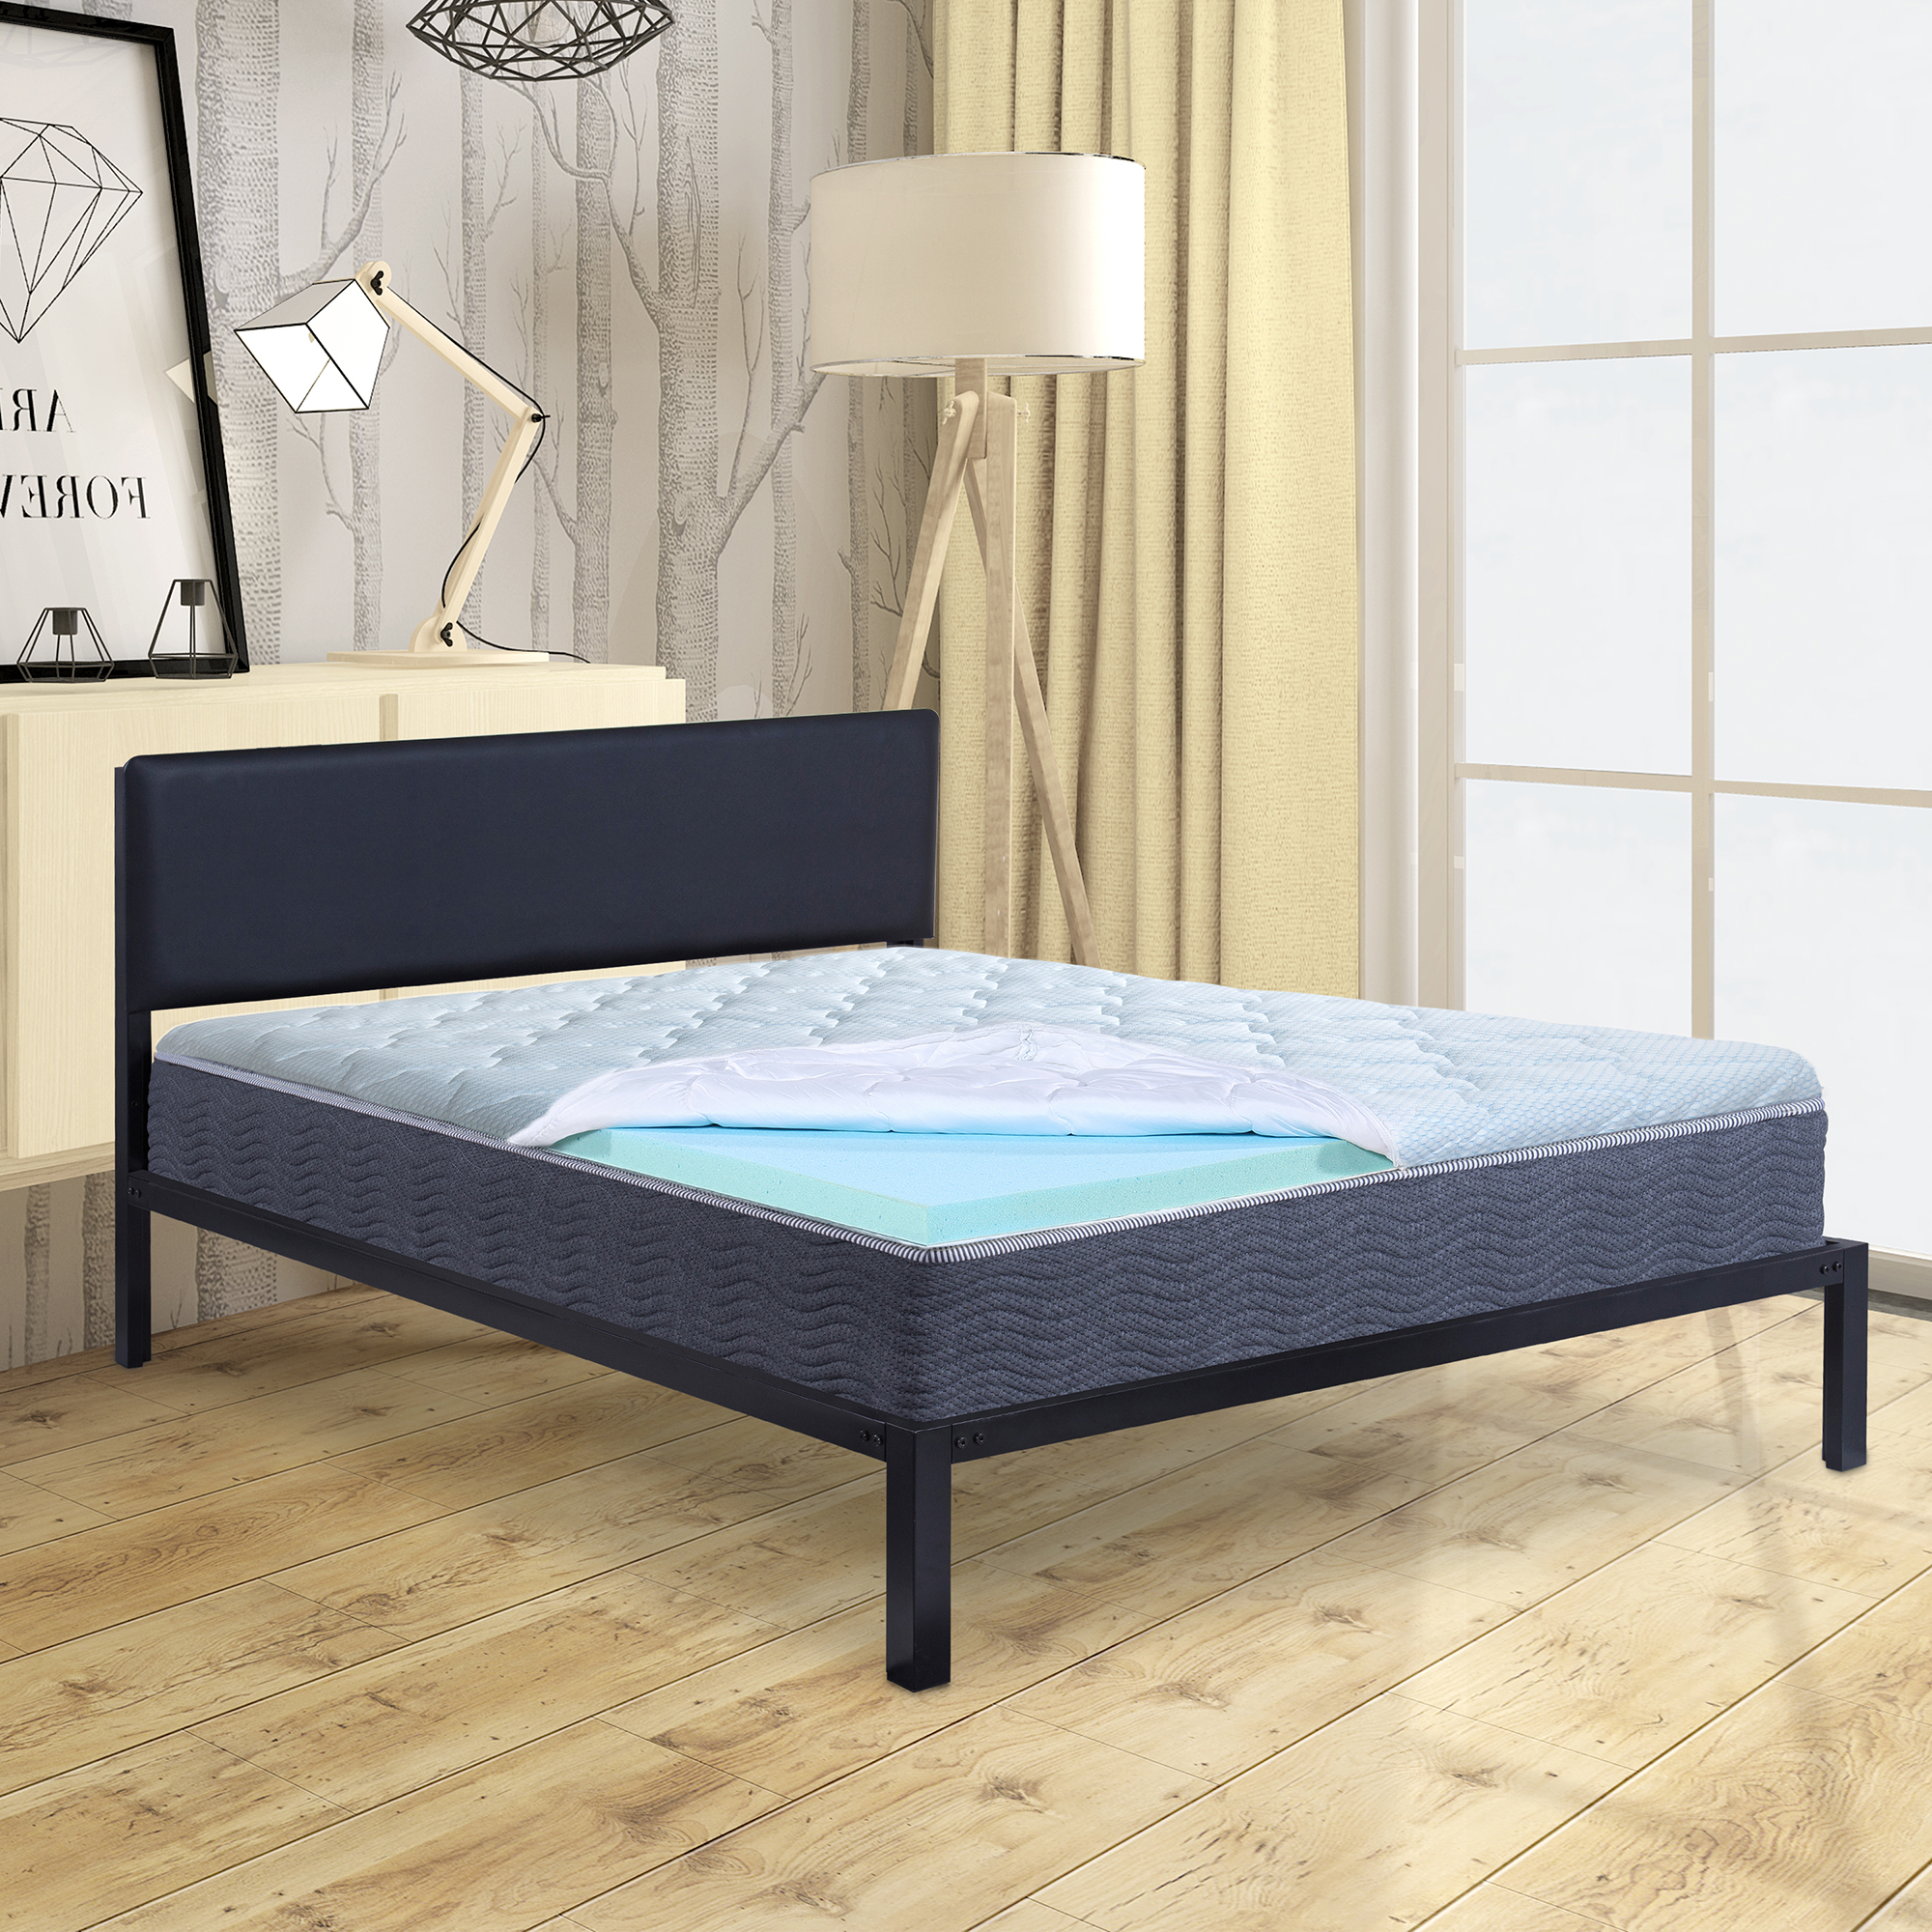 for sleeper should mattress beds rated best buy bed june sleepers dreamfoam of mattresses you these which pexels side reviews bedding photo top